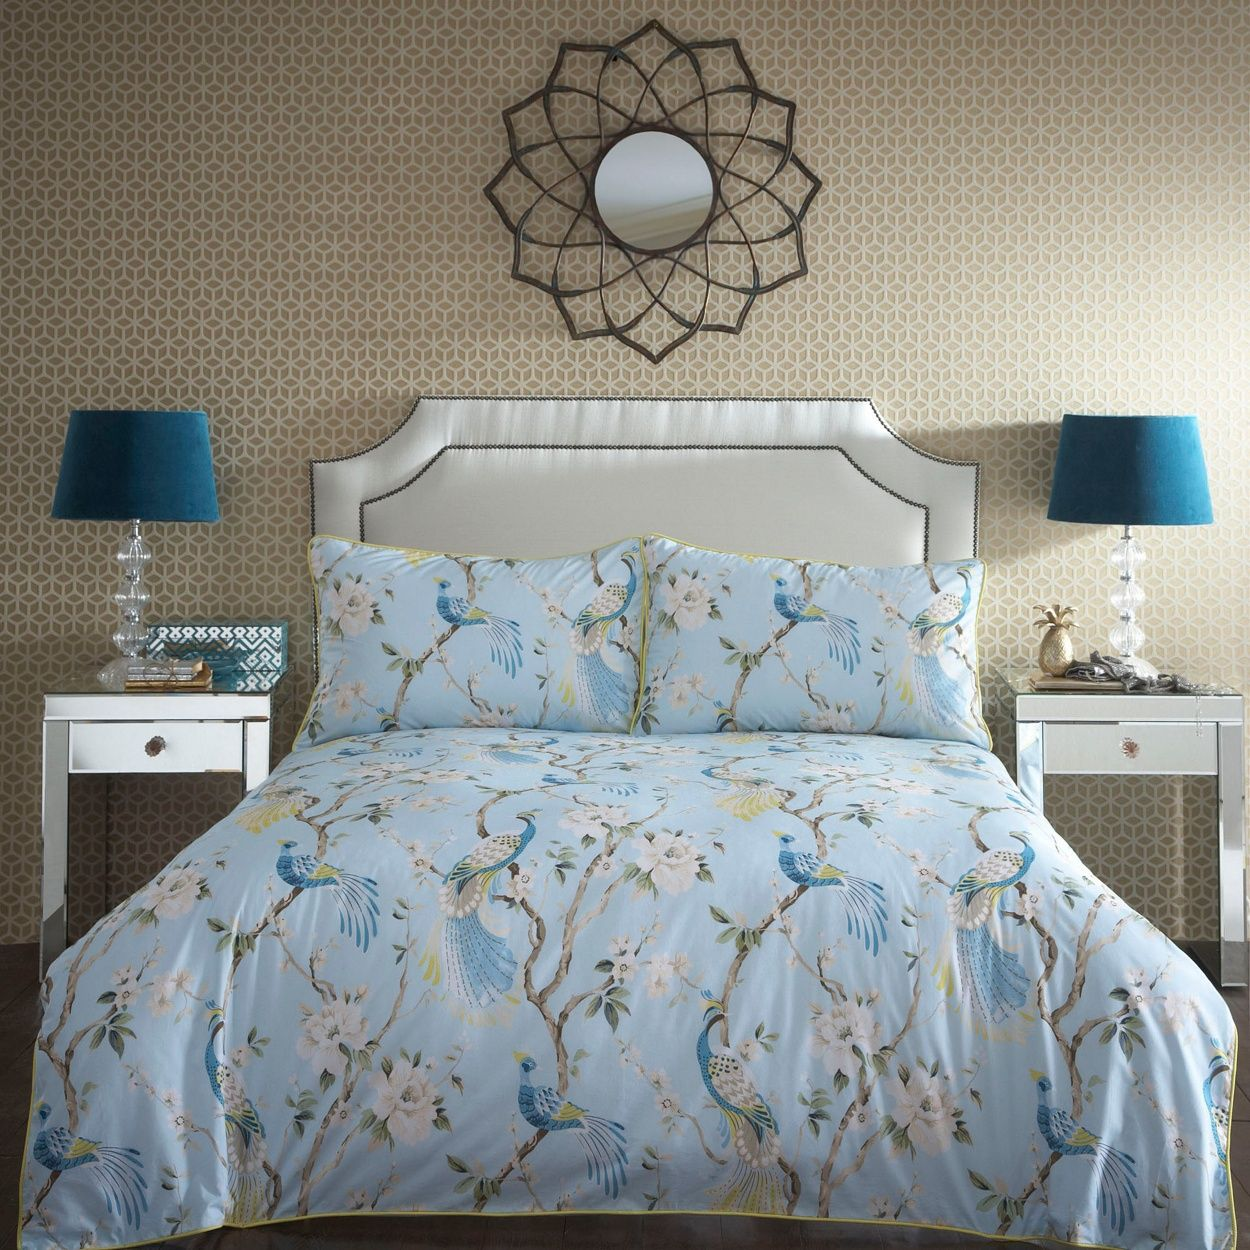 Bedroom Chairs Debenhams Older Boys Bedroom Wallpaper Pretty Bedrooms For Girls Purple Kids Bedroom Ceiling Decorations: Home Collection Blue 'Paradise' Floral Bird Pattern